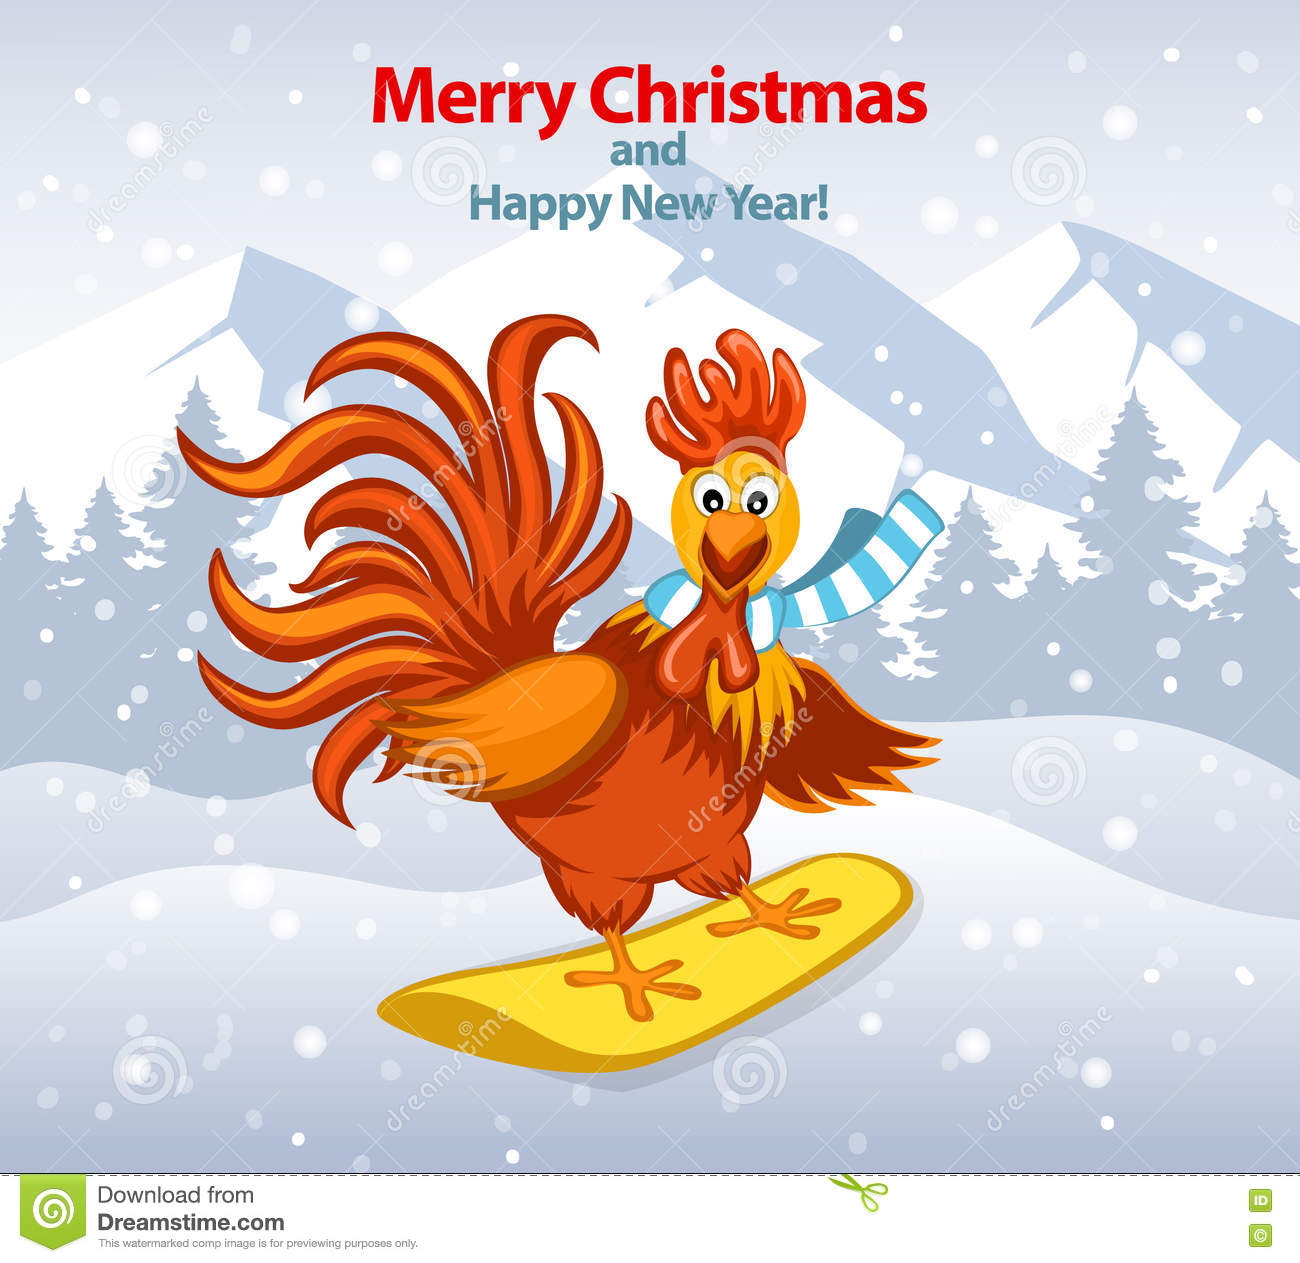 Merry christmas and happy new year greeting card with cute funny merry christmas and happy new year greeting card with cute funny rooster on snowboard m4hsunfo